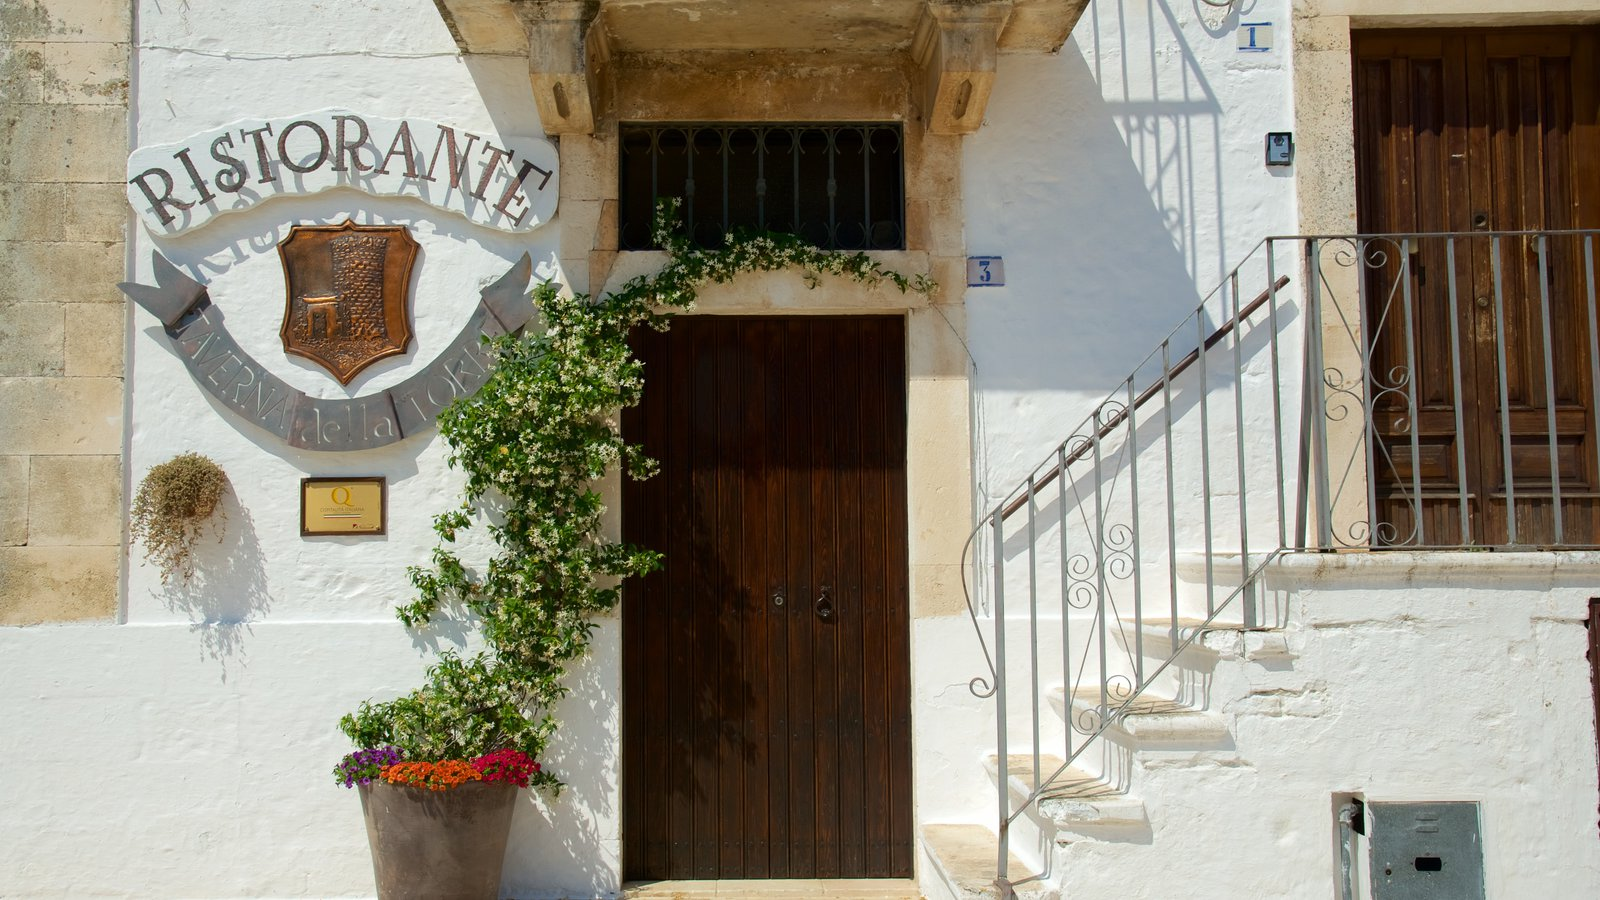 Brindisi featuring heritage architecture and signage